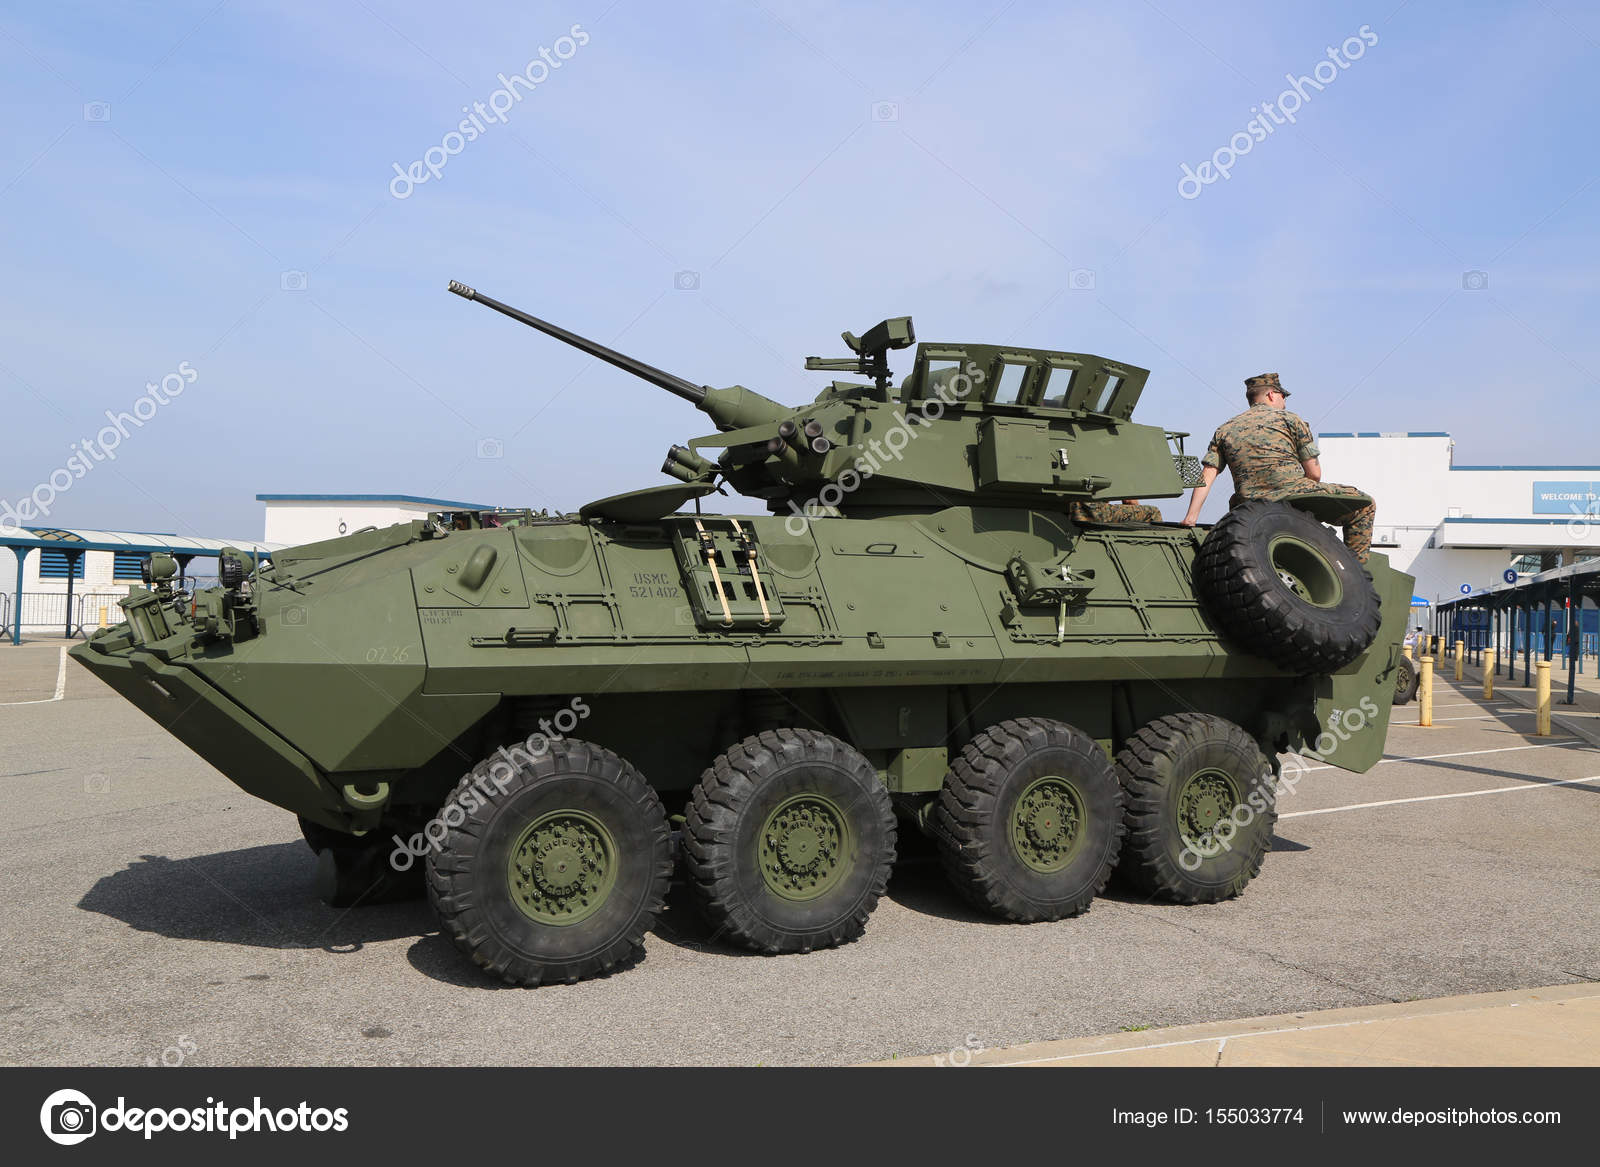 reconnaissance Light vehicle armored